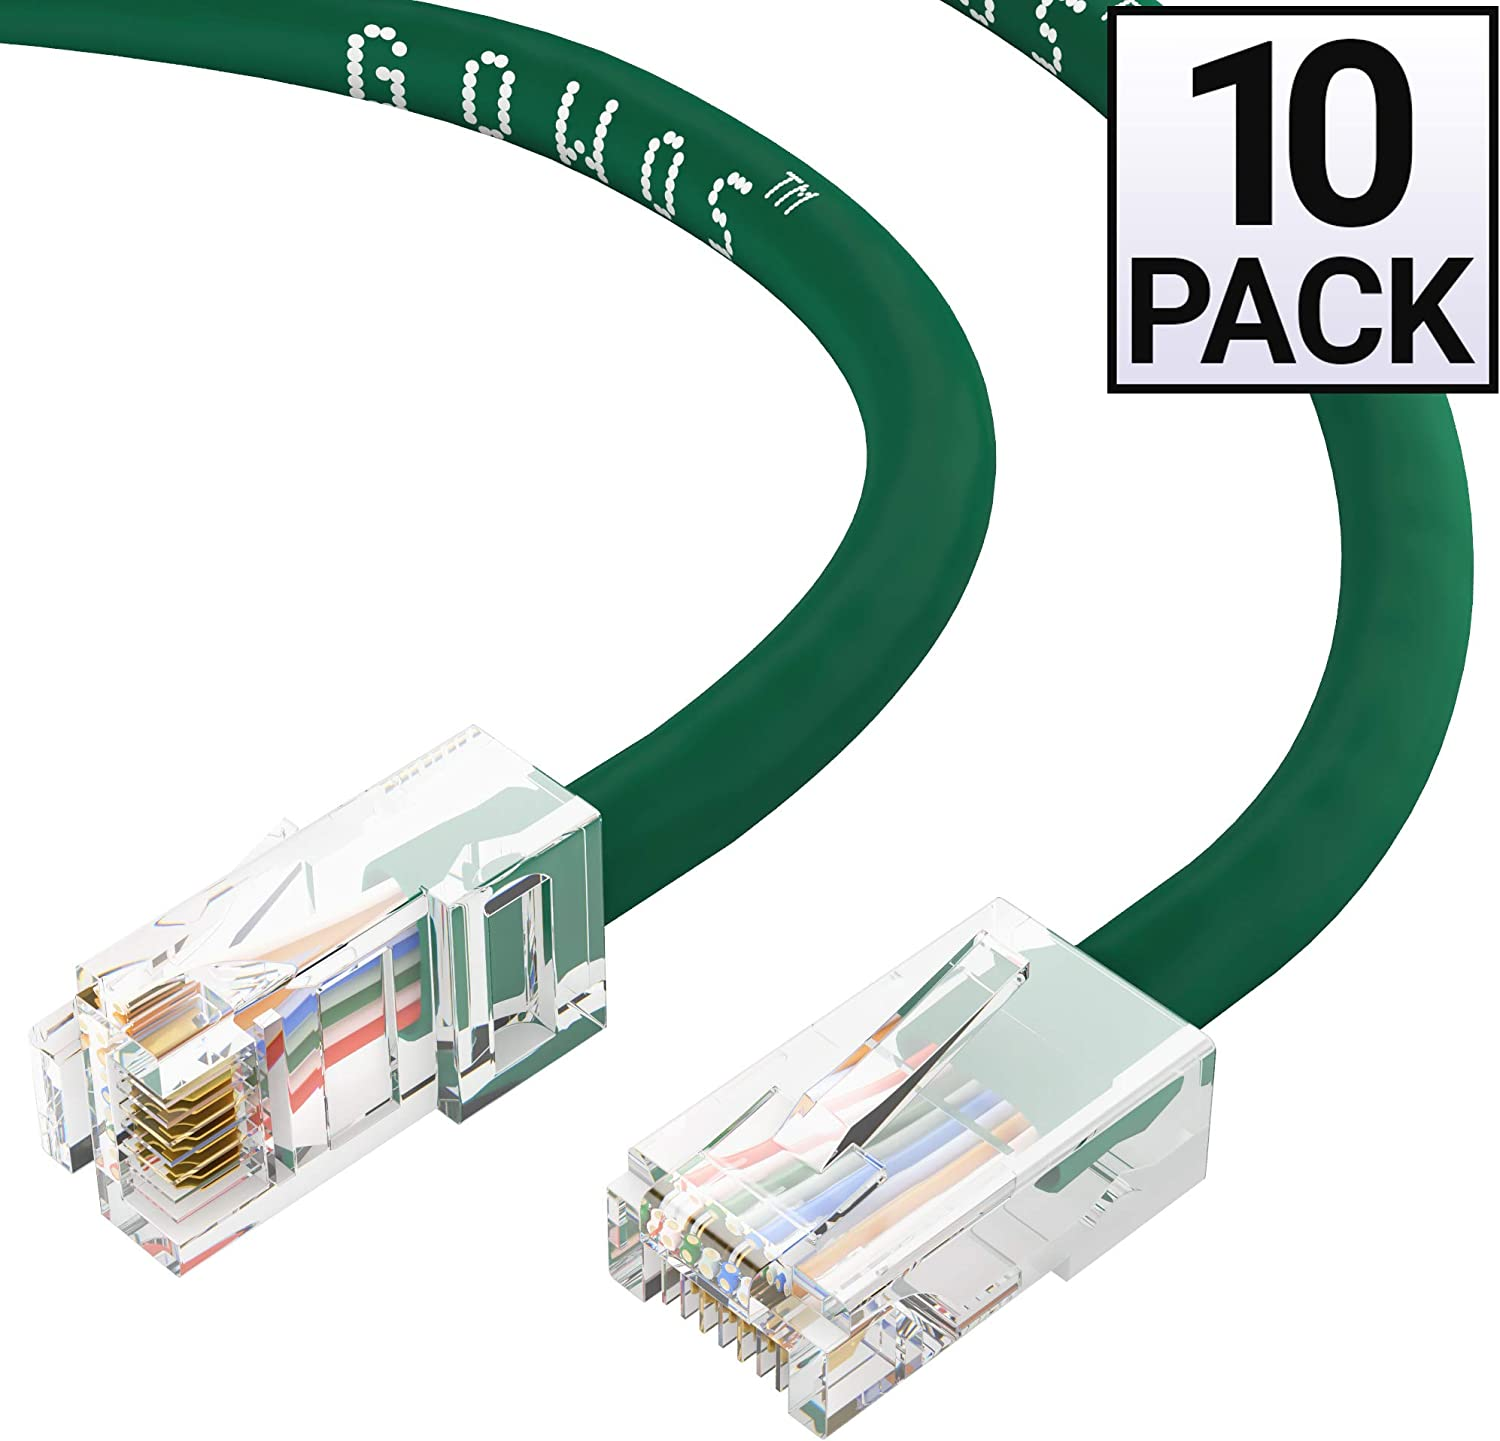 Green GOWOS Cat5e Ethernet Cable 1Gigabit//Sec High Speed LAN Internet//Patch Cable 350MHz 24AWG Network Cable with Gold Plated RJ45 Non-Booted Connector 10-Pack - 35 Feet